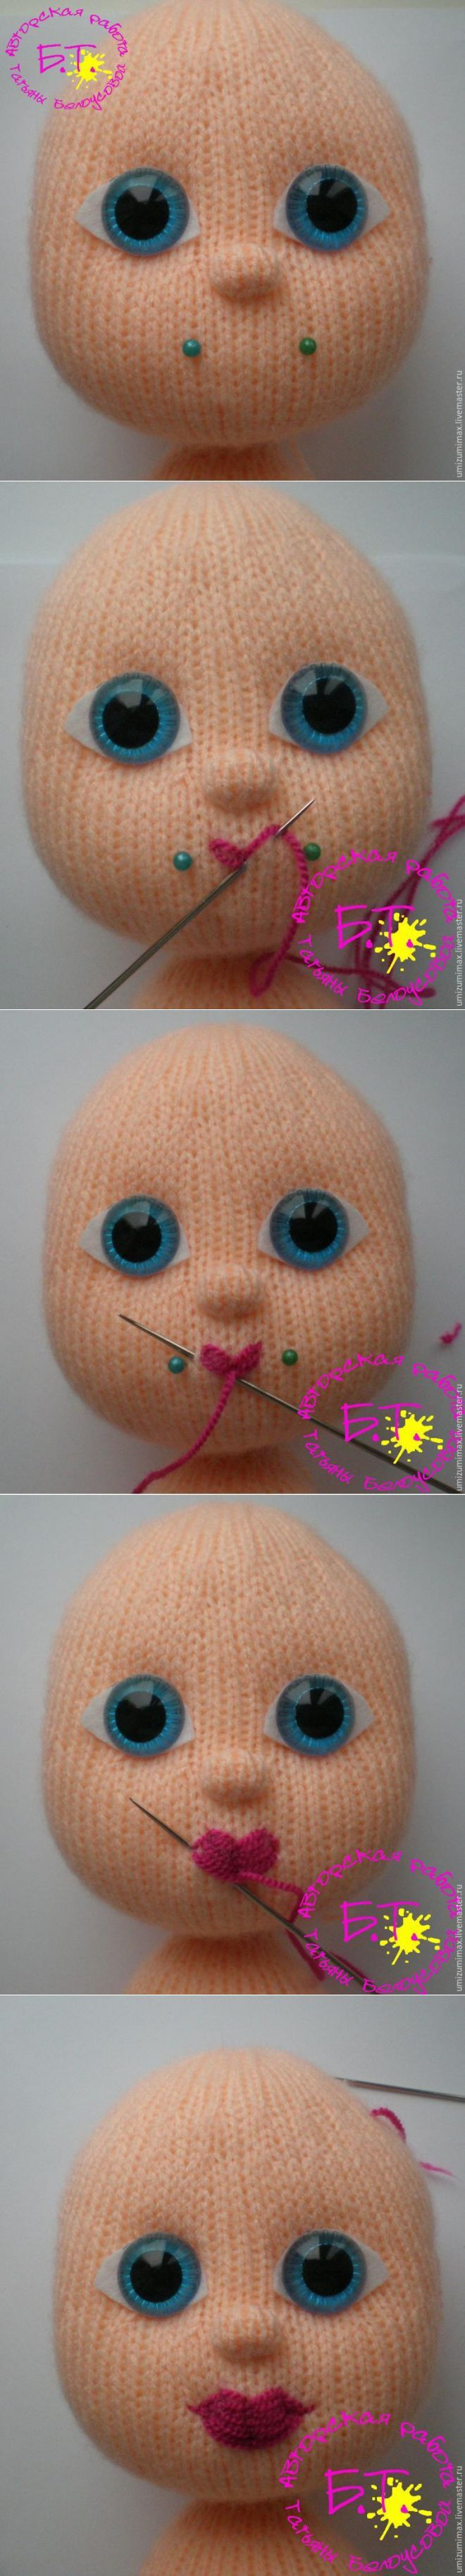 How To Sew A Bow Lips Knitted Doll  Himself A Magician